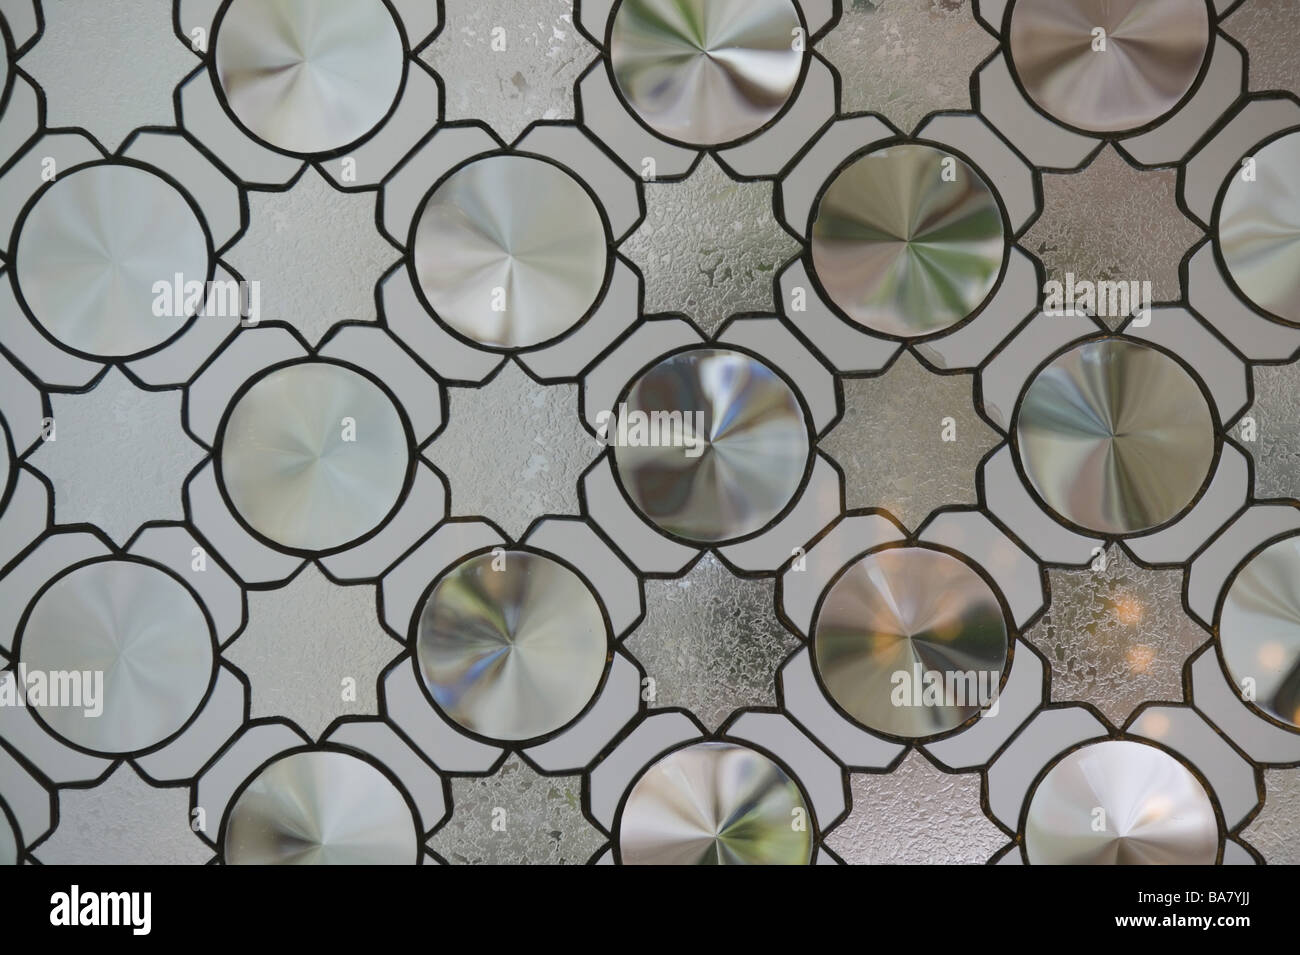 Glass Door Detail Door Glass Lead Glass Door Lead Glass Glass Milk Glass  Circles Ornament Patterns Structure Opaque Lead Glass